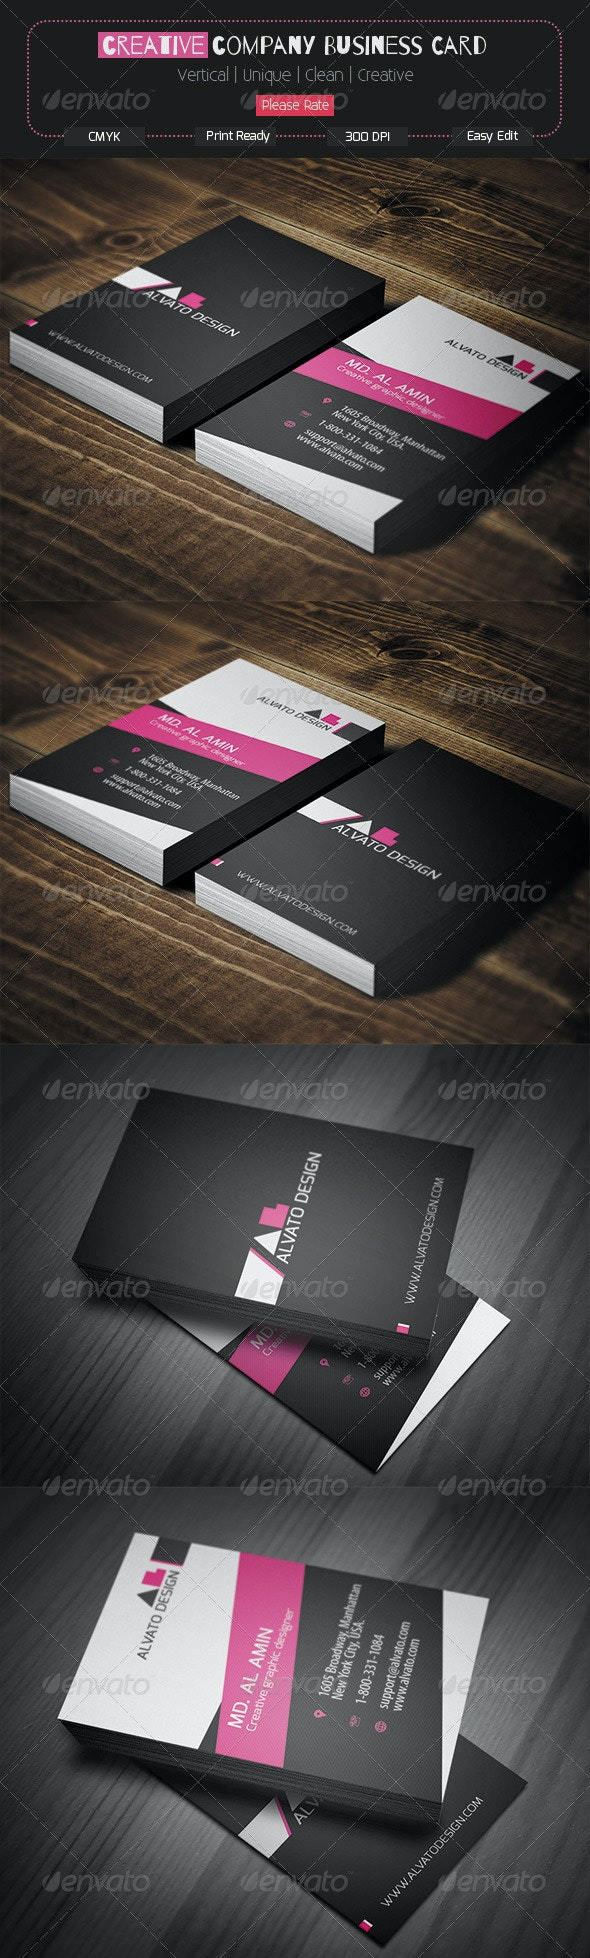 Creative Company Business Card - Corporate Business Cards